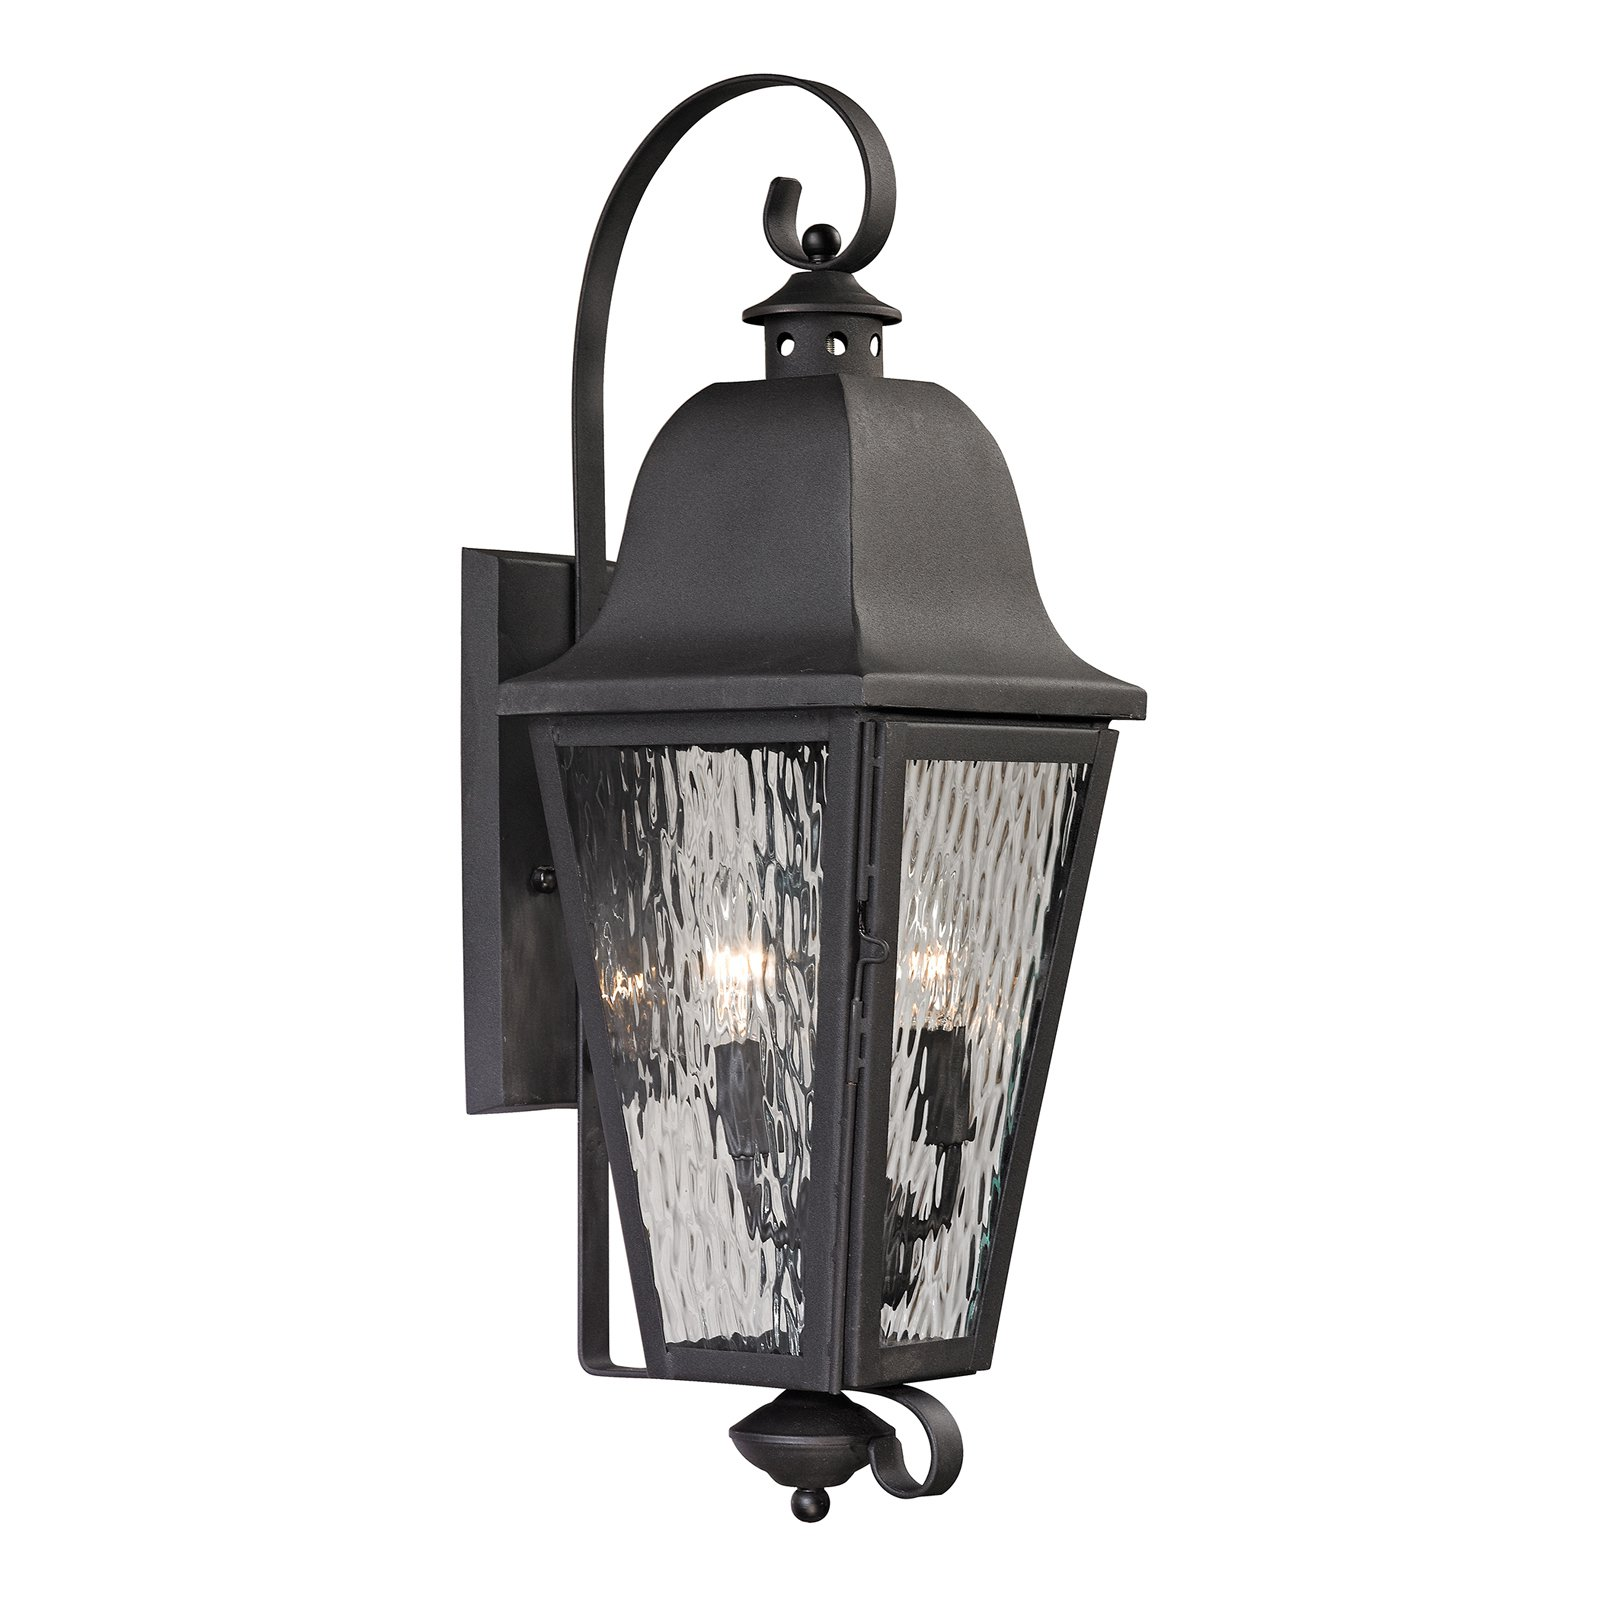 ELK Lighting Forged Brookridge 47101 2 2-Light Outdoor Wall Sconce by Elk Lighting